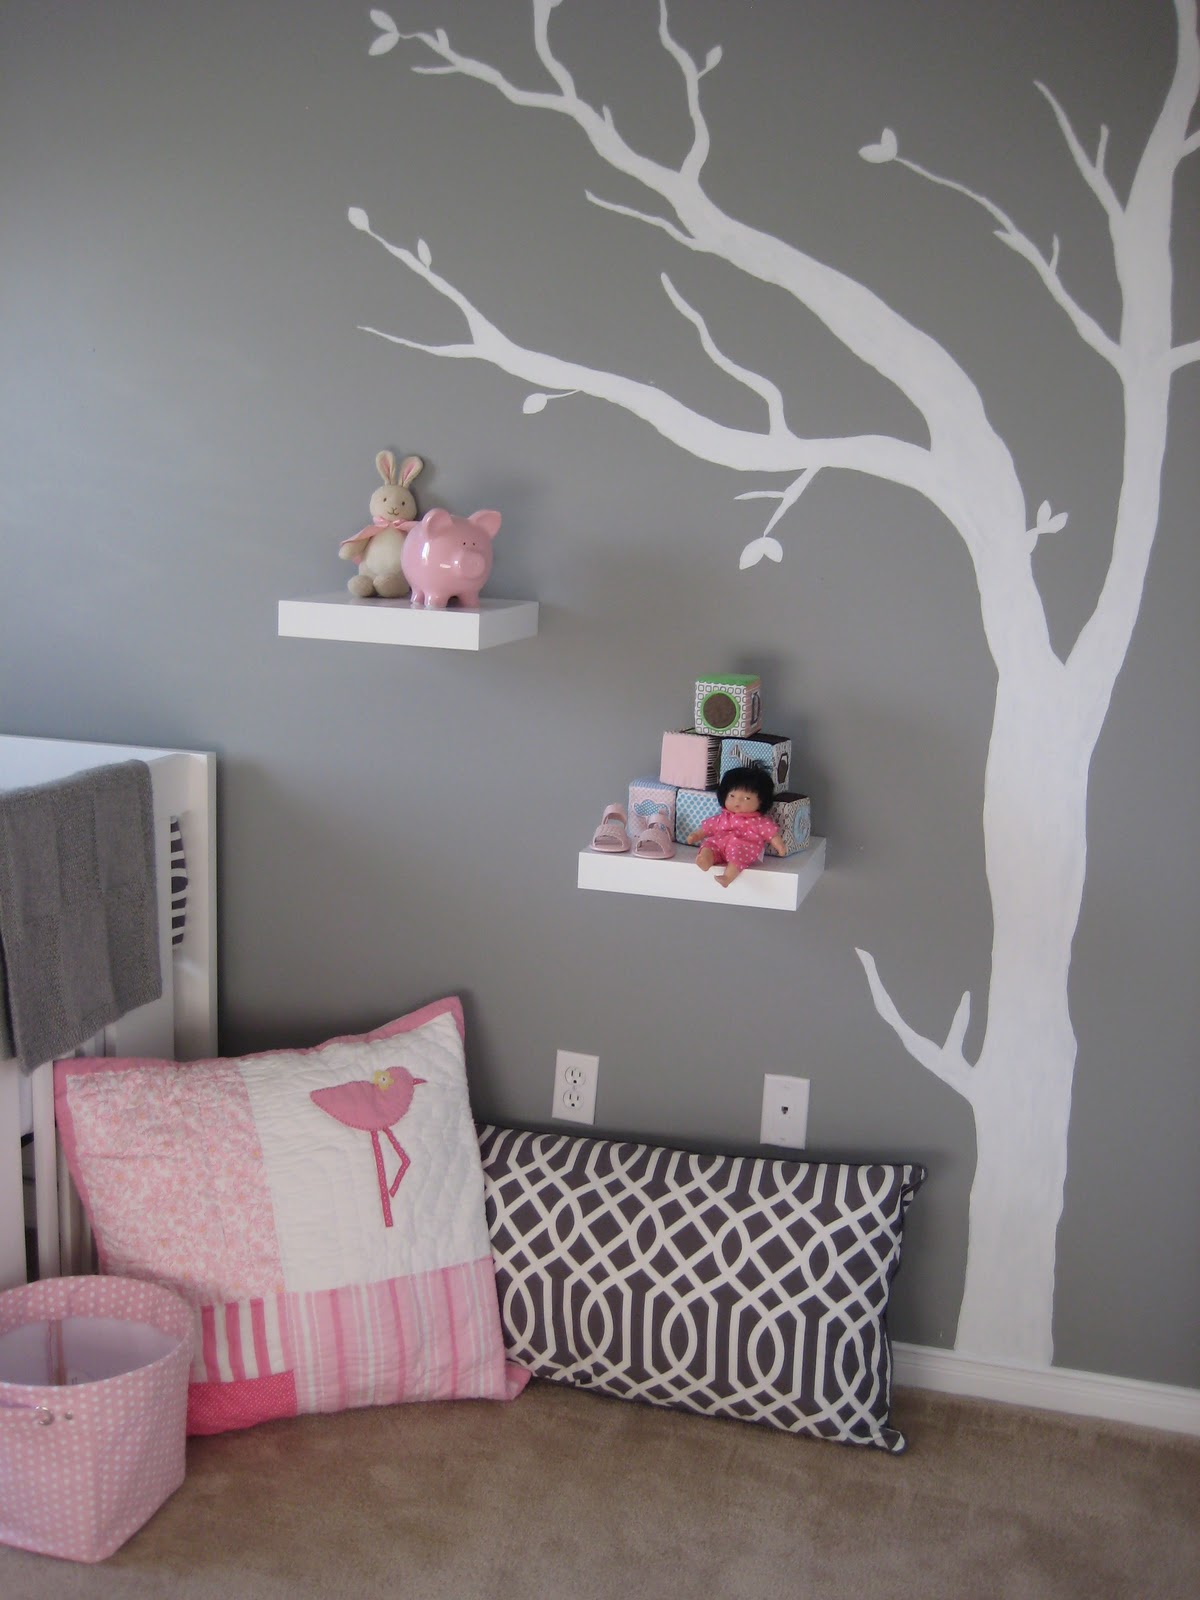 Grey And Pink Living Room Decor: World Of Arts For Children: Mod Gray And Pink Nursery